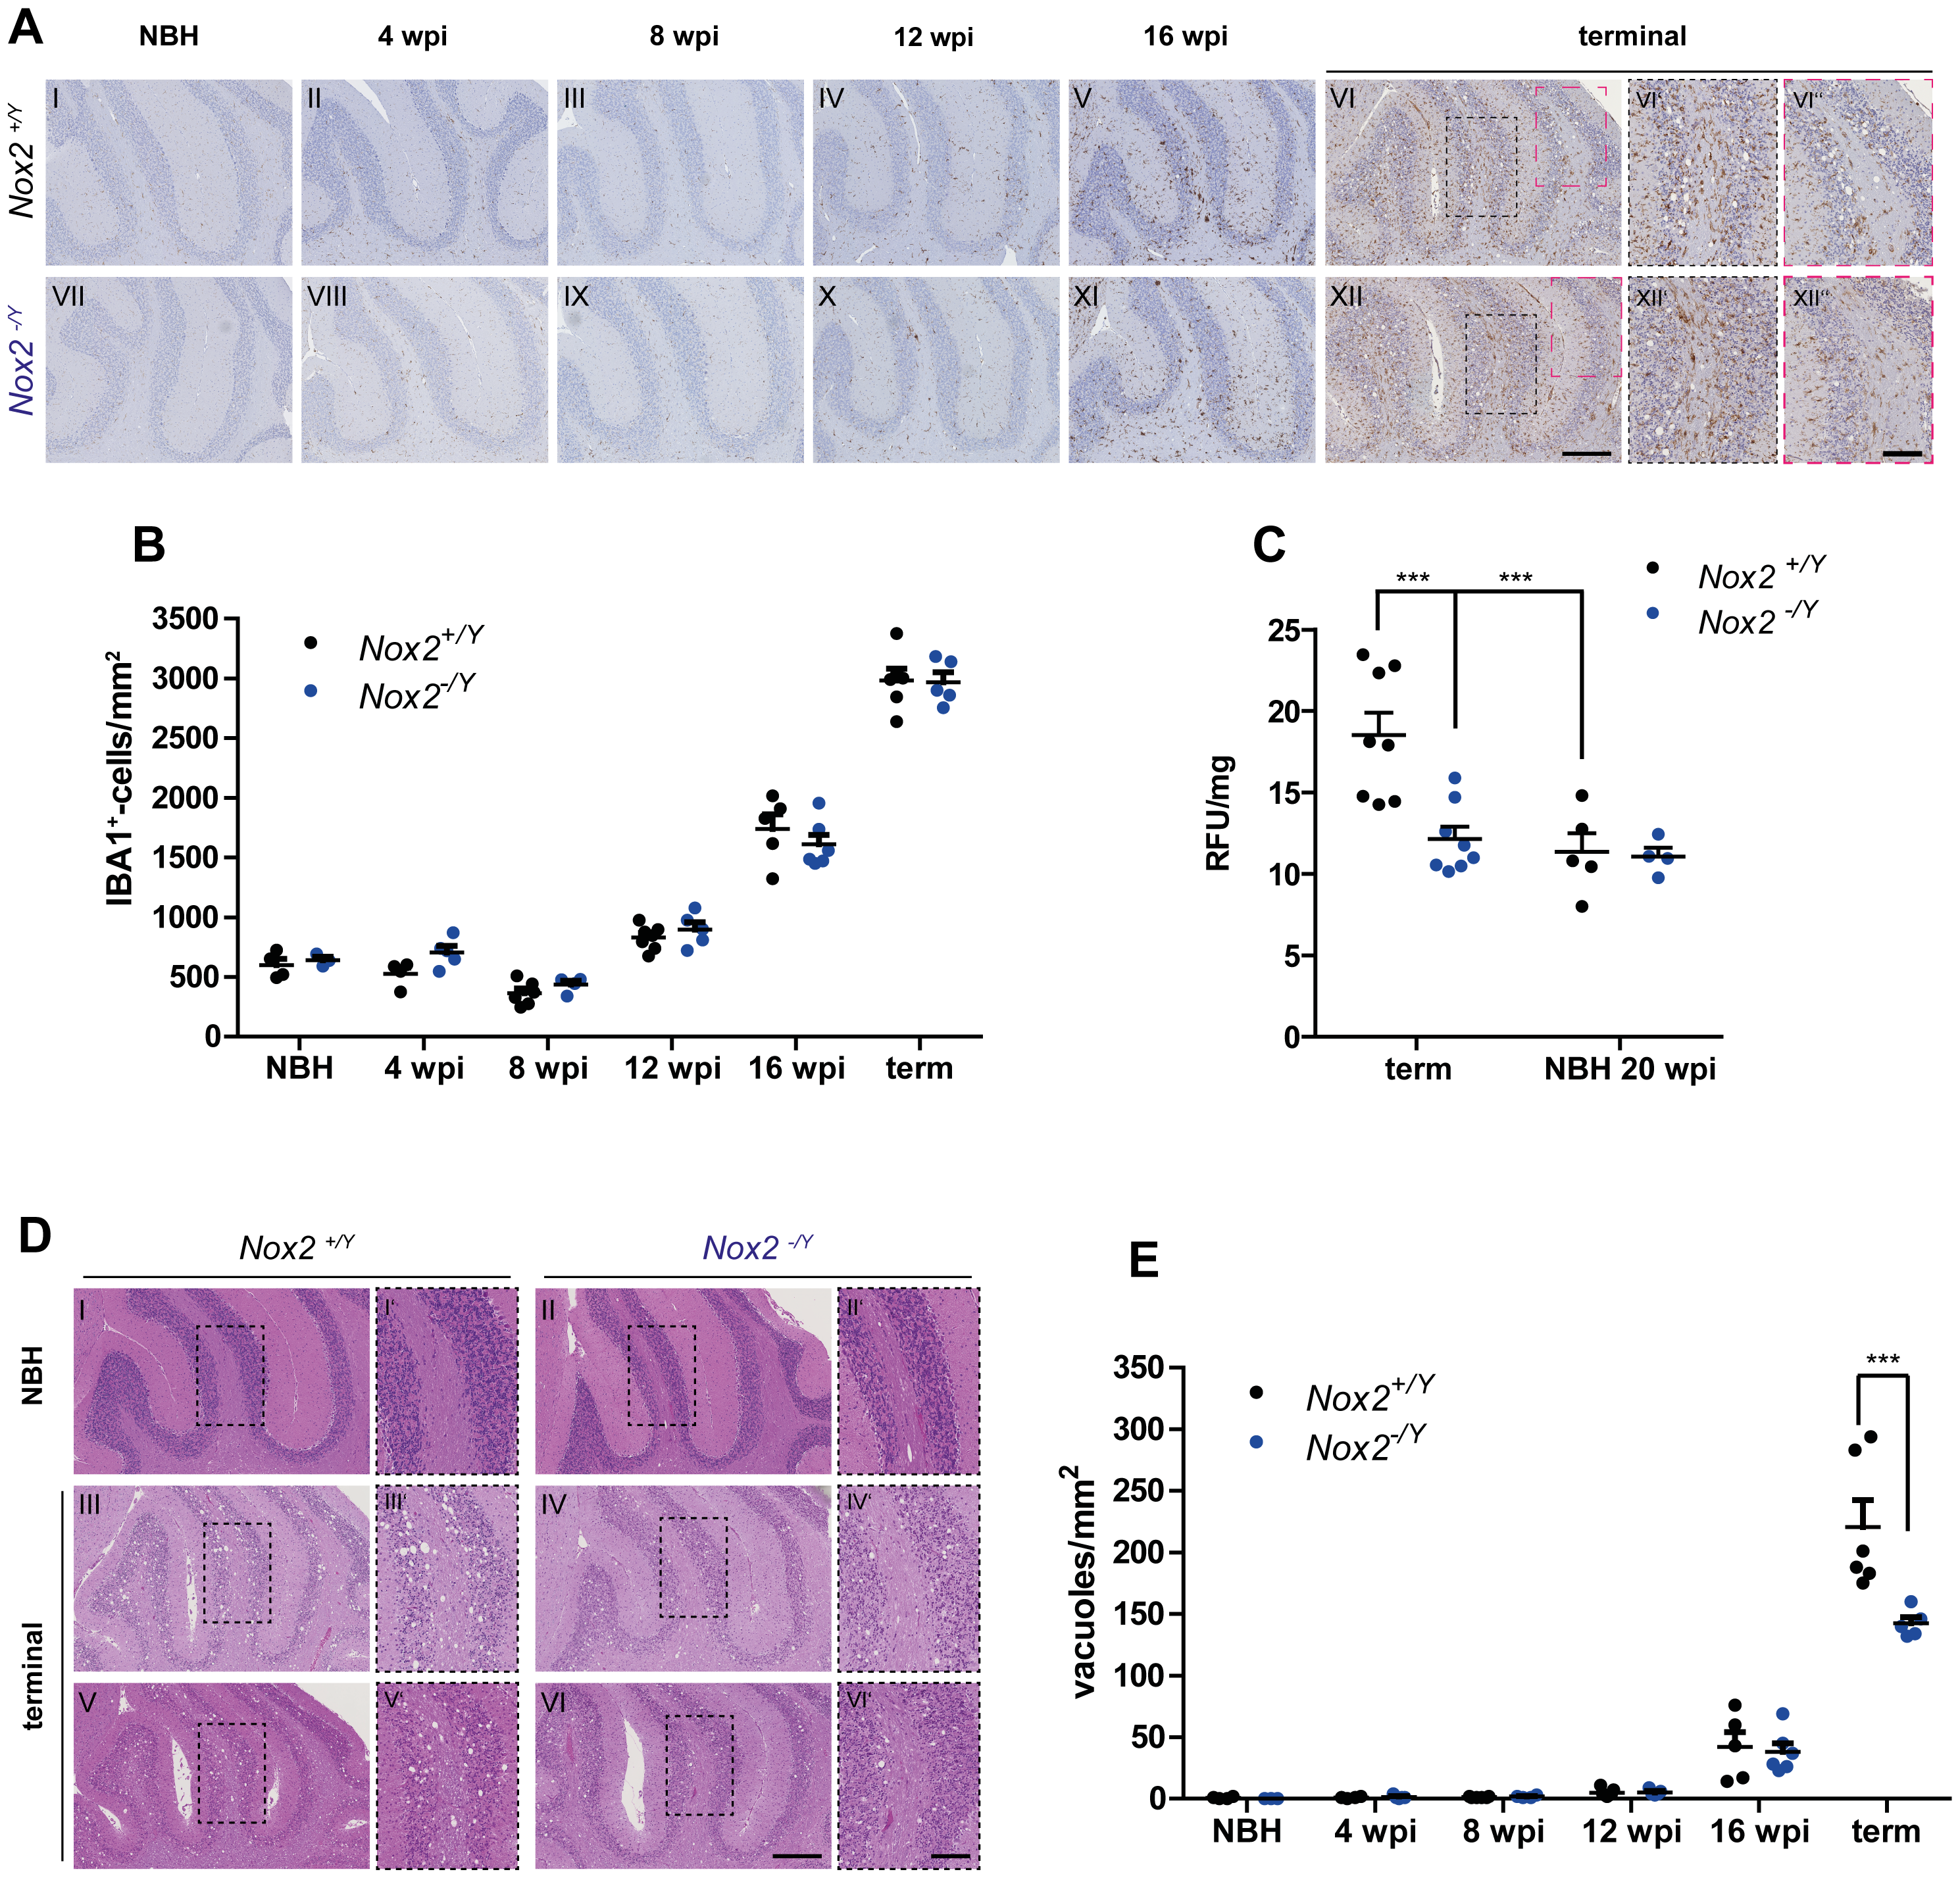 Effect of NOX2 expression on microglial proliferation, ROS production and spongiform changes after prion inoculation.